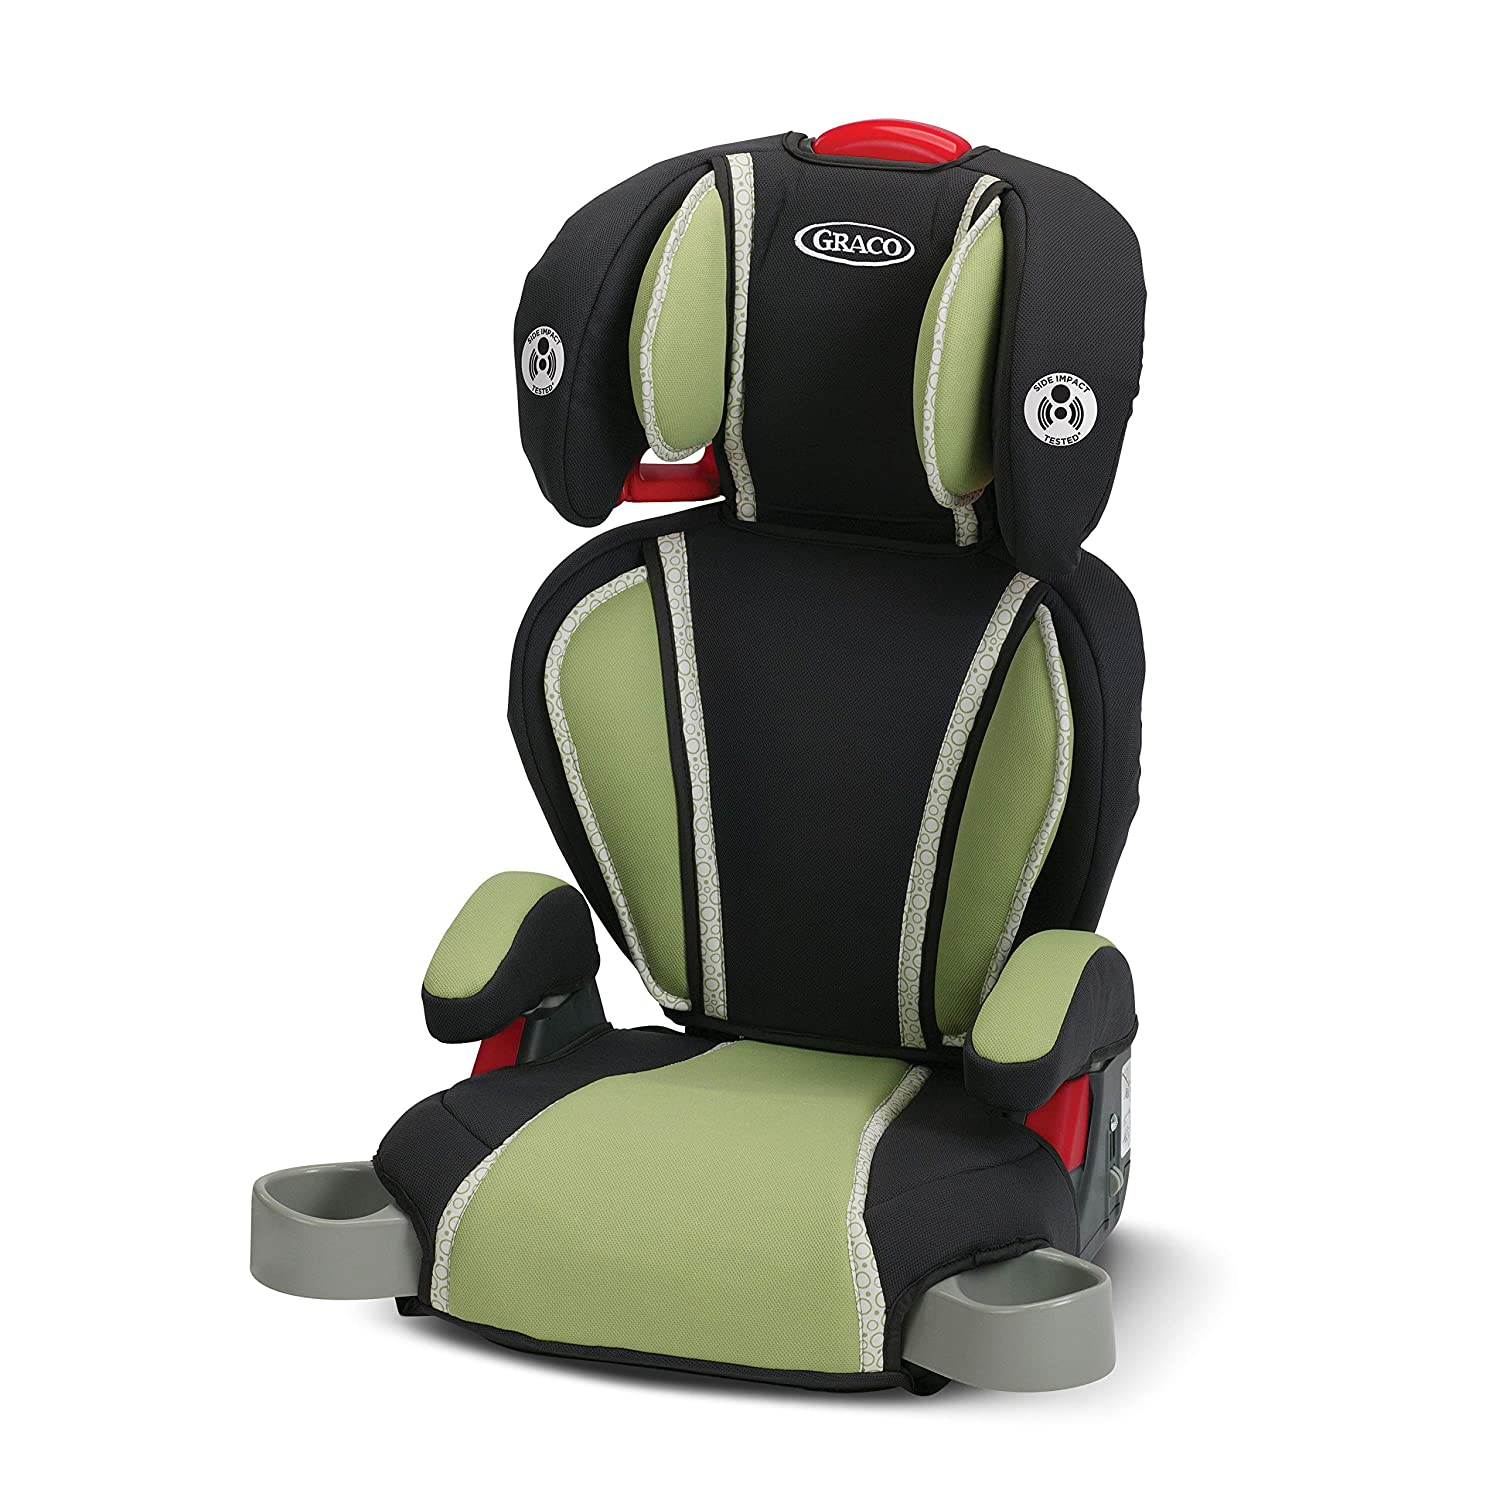 Graco Turbobooster Seat